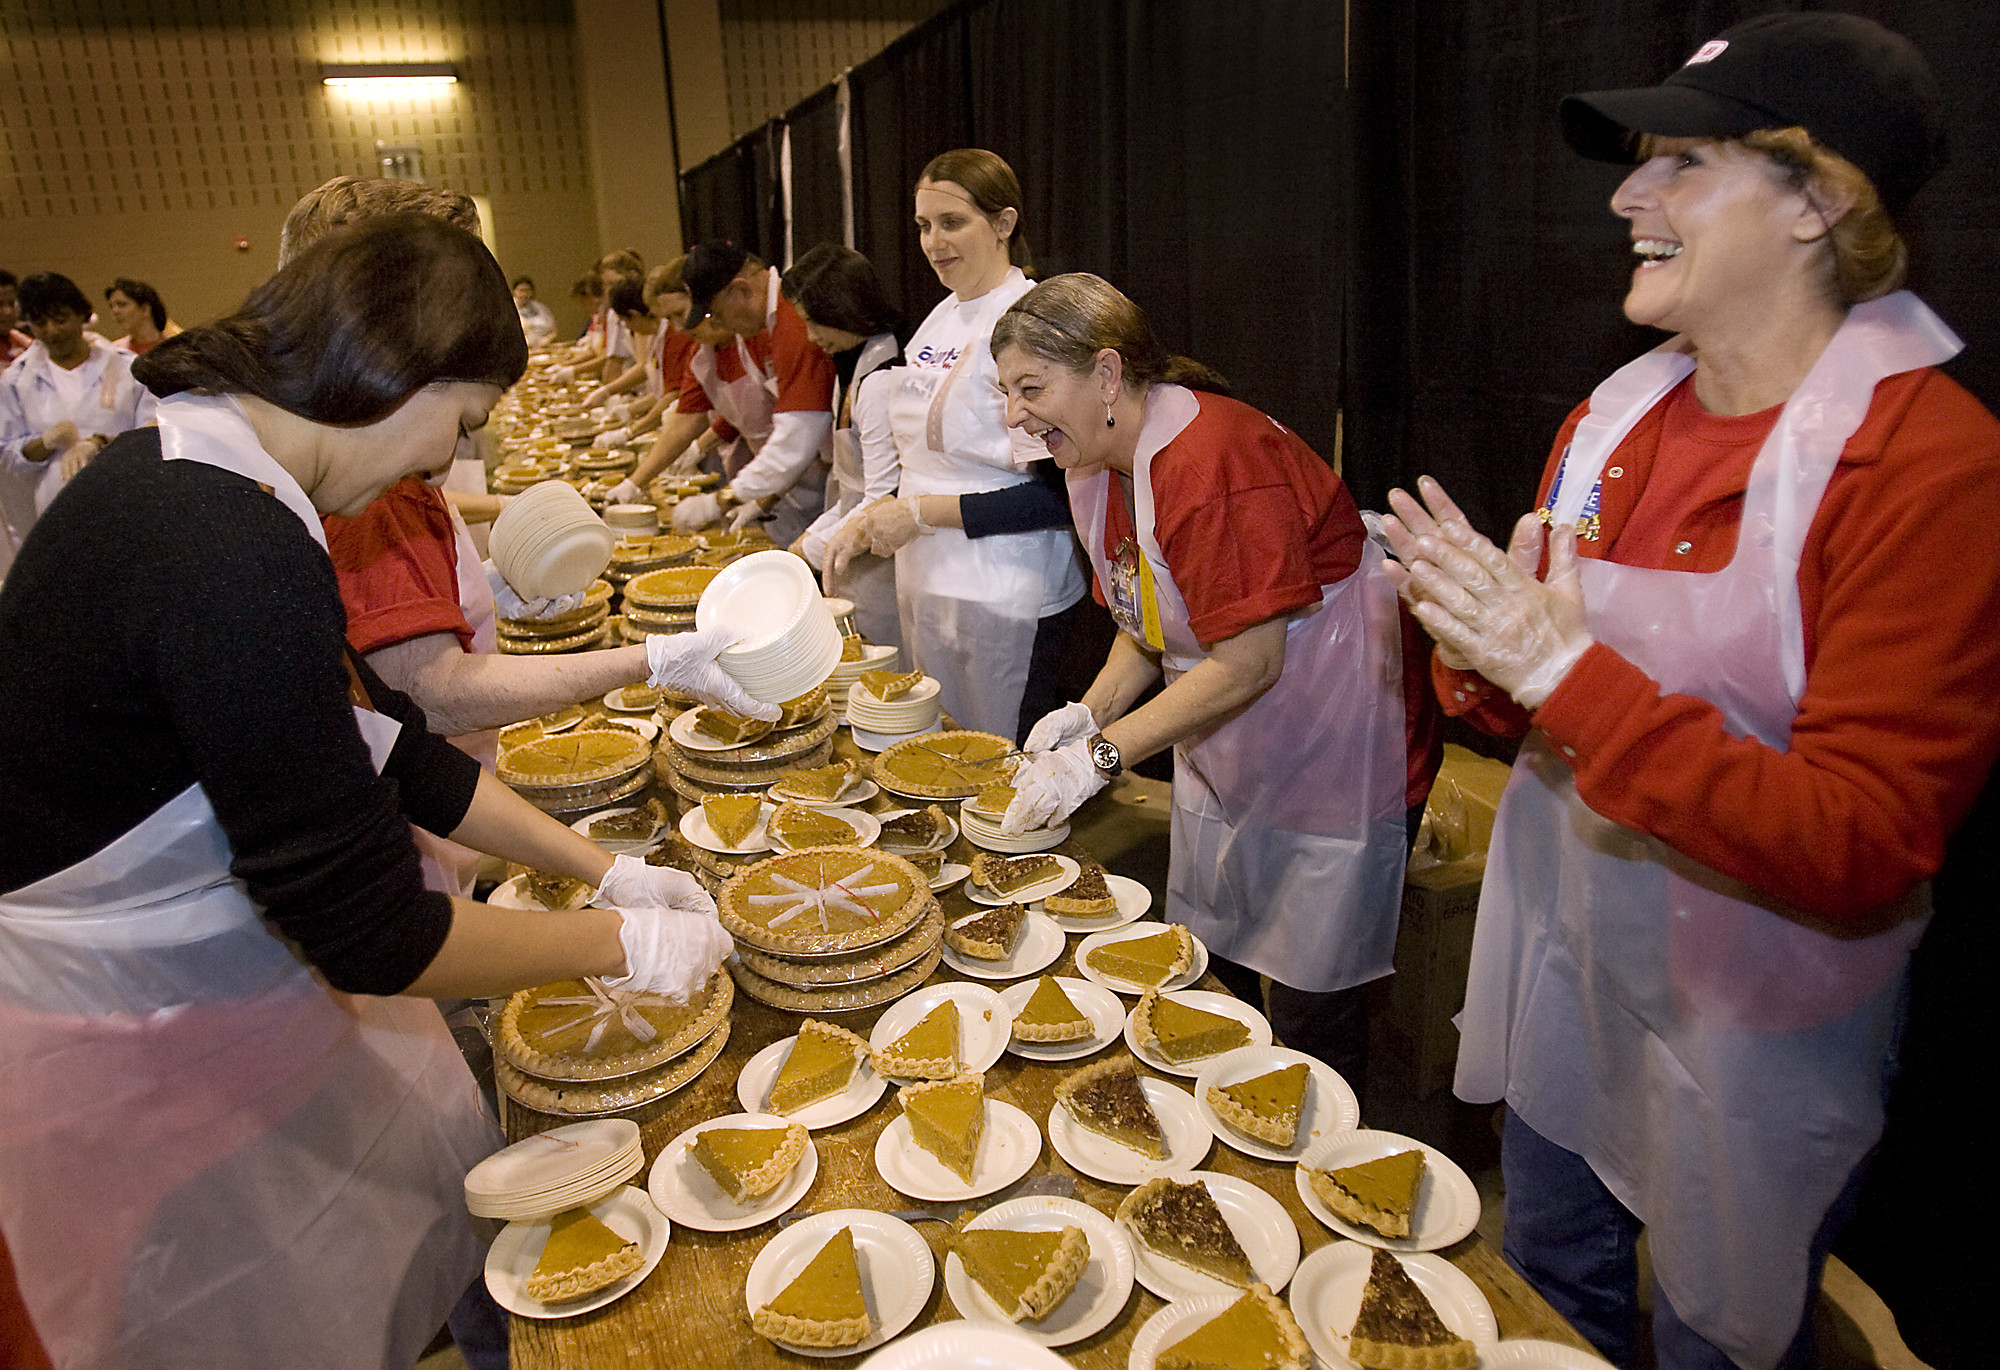 Heb Thanksgiving Dinner  HEB's Feast of Sharing Feeds Thousands